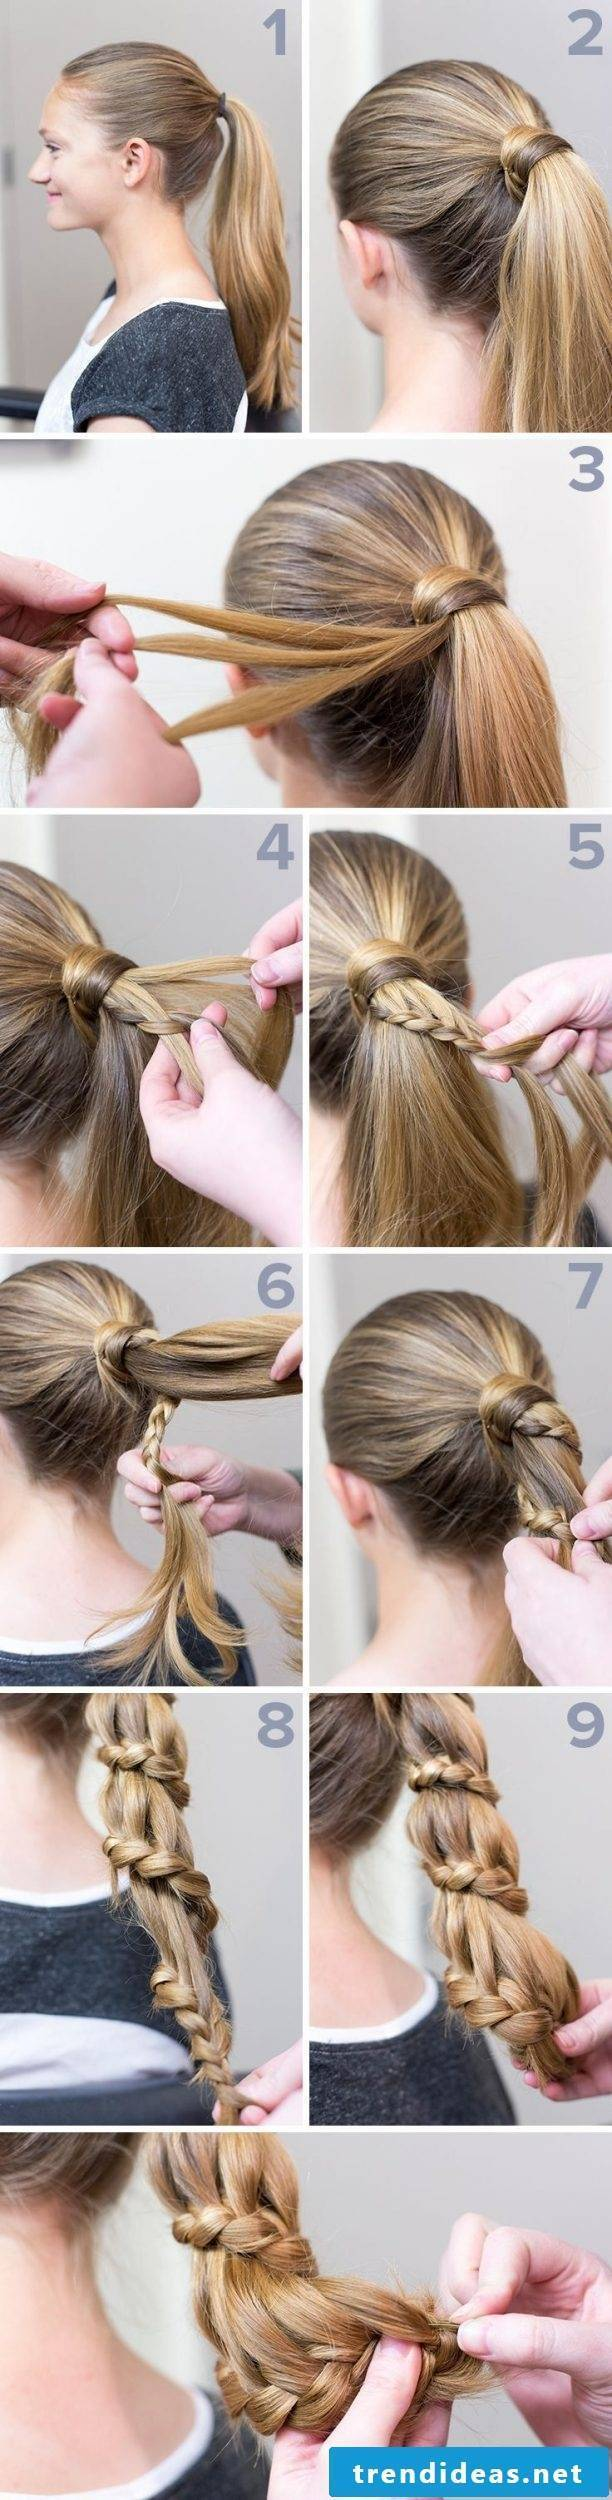 braiding hairstyle instructions to make yourself with pictures